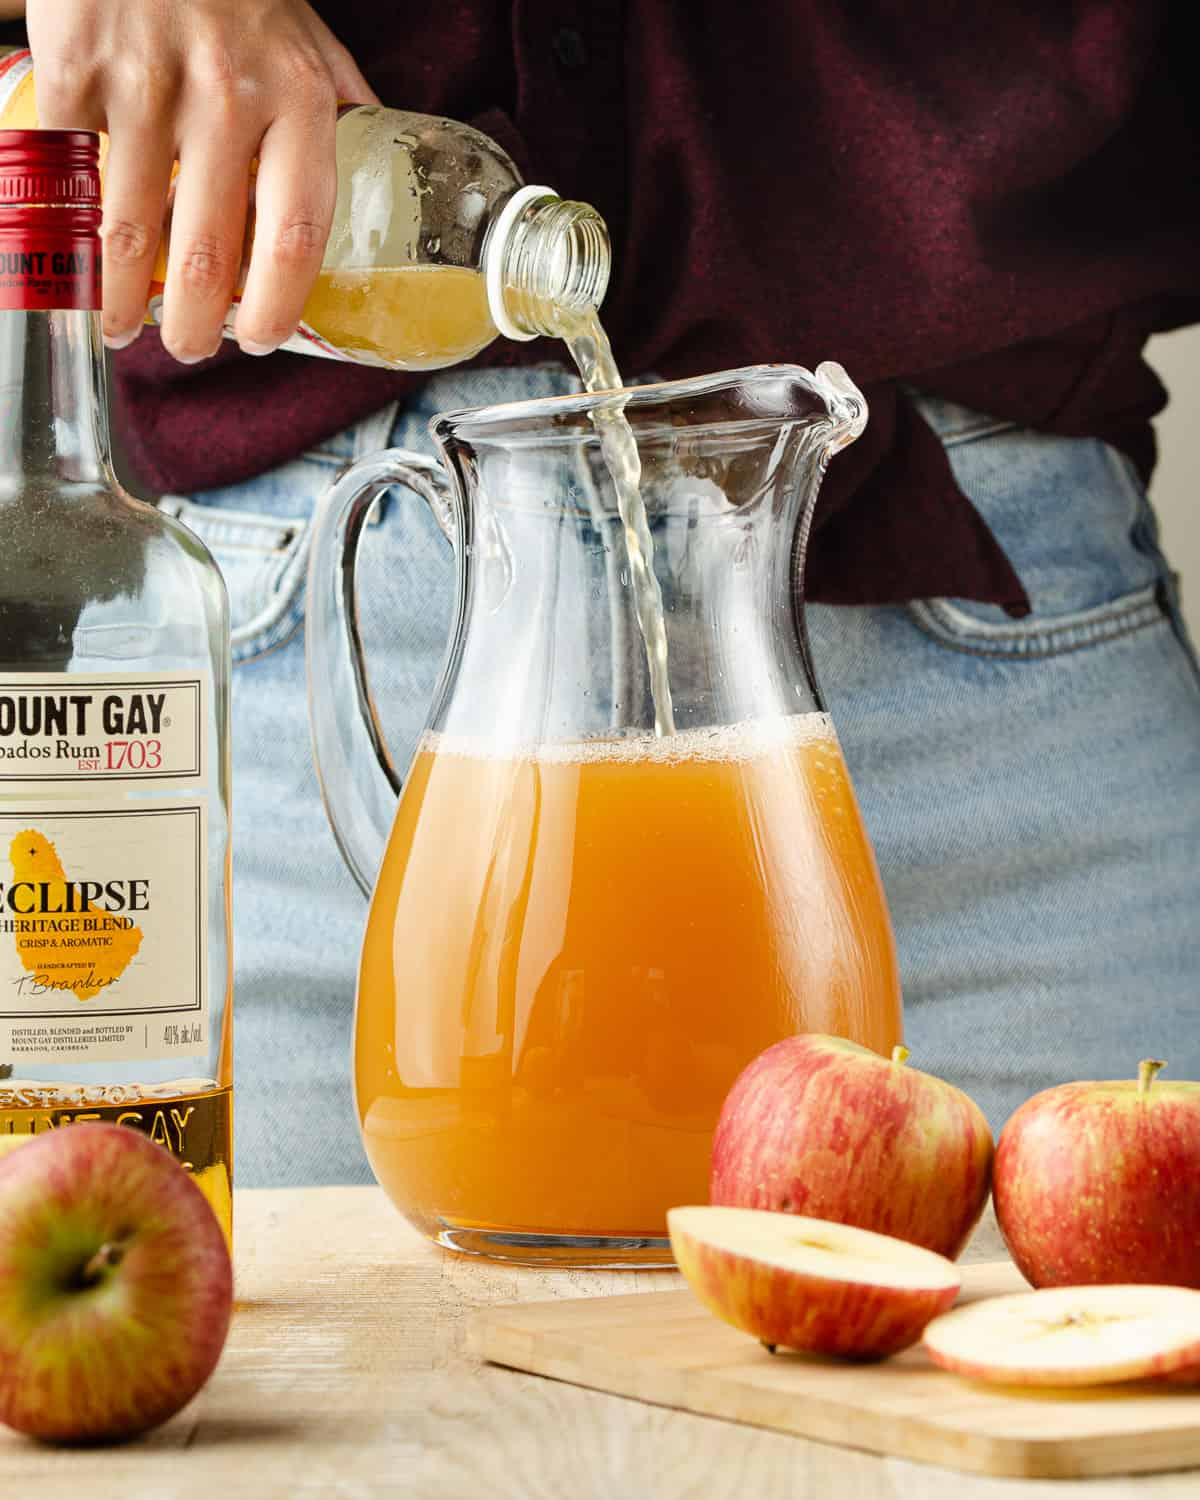 Pouring kombucha into a pitcher of apple cider and rum.